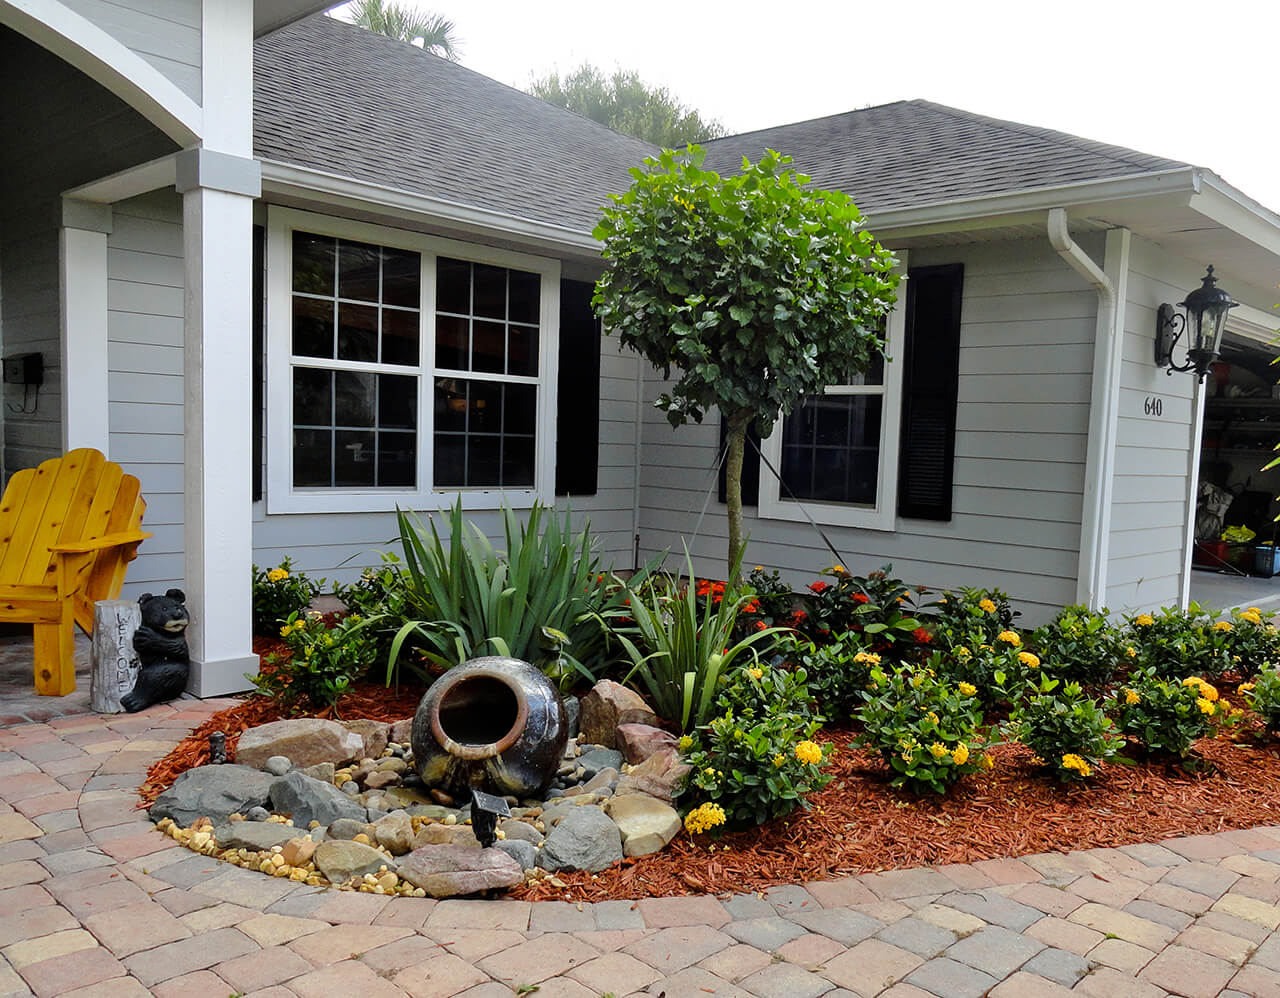 landscaping ideas for front yard 2. mini water feature entryway PQGLUXA